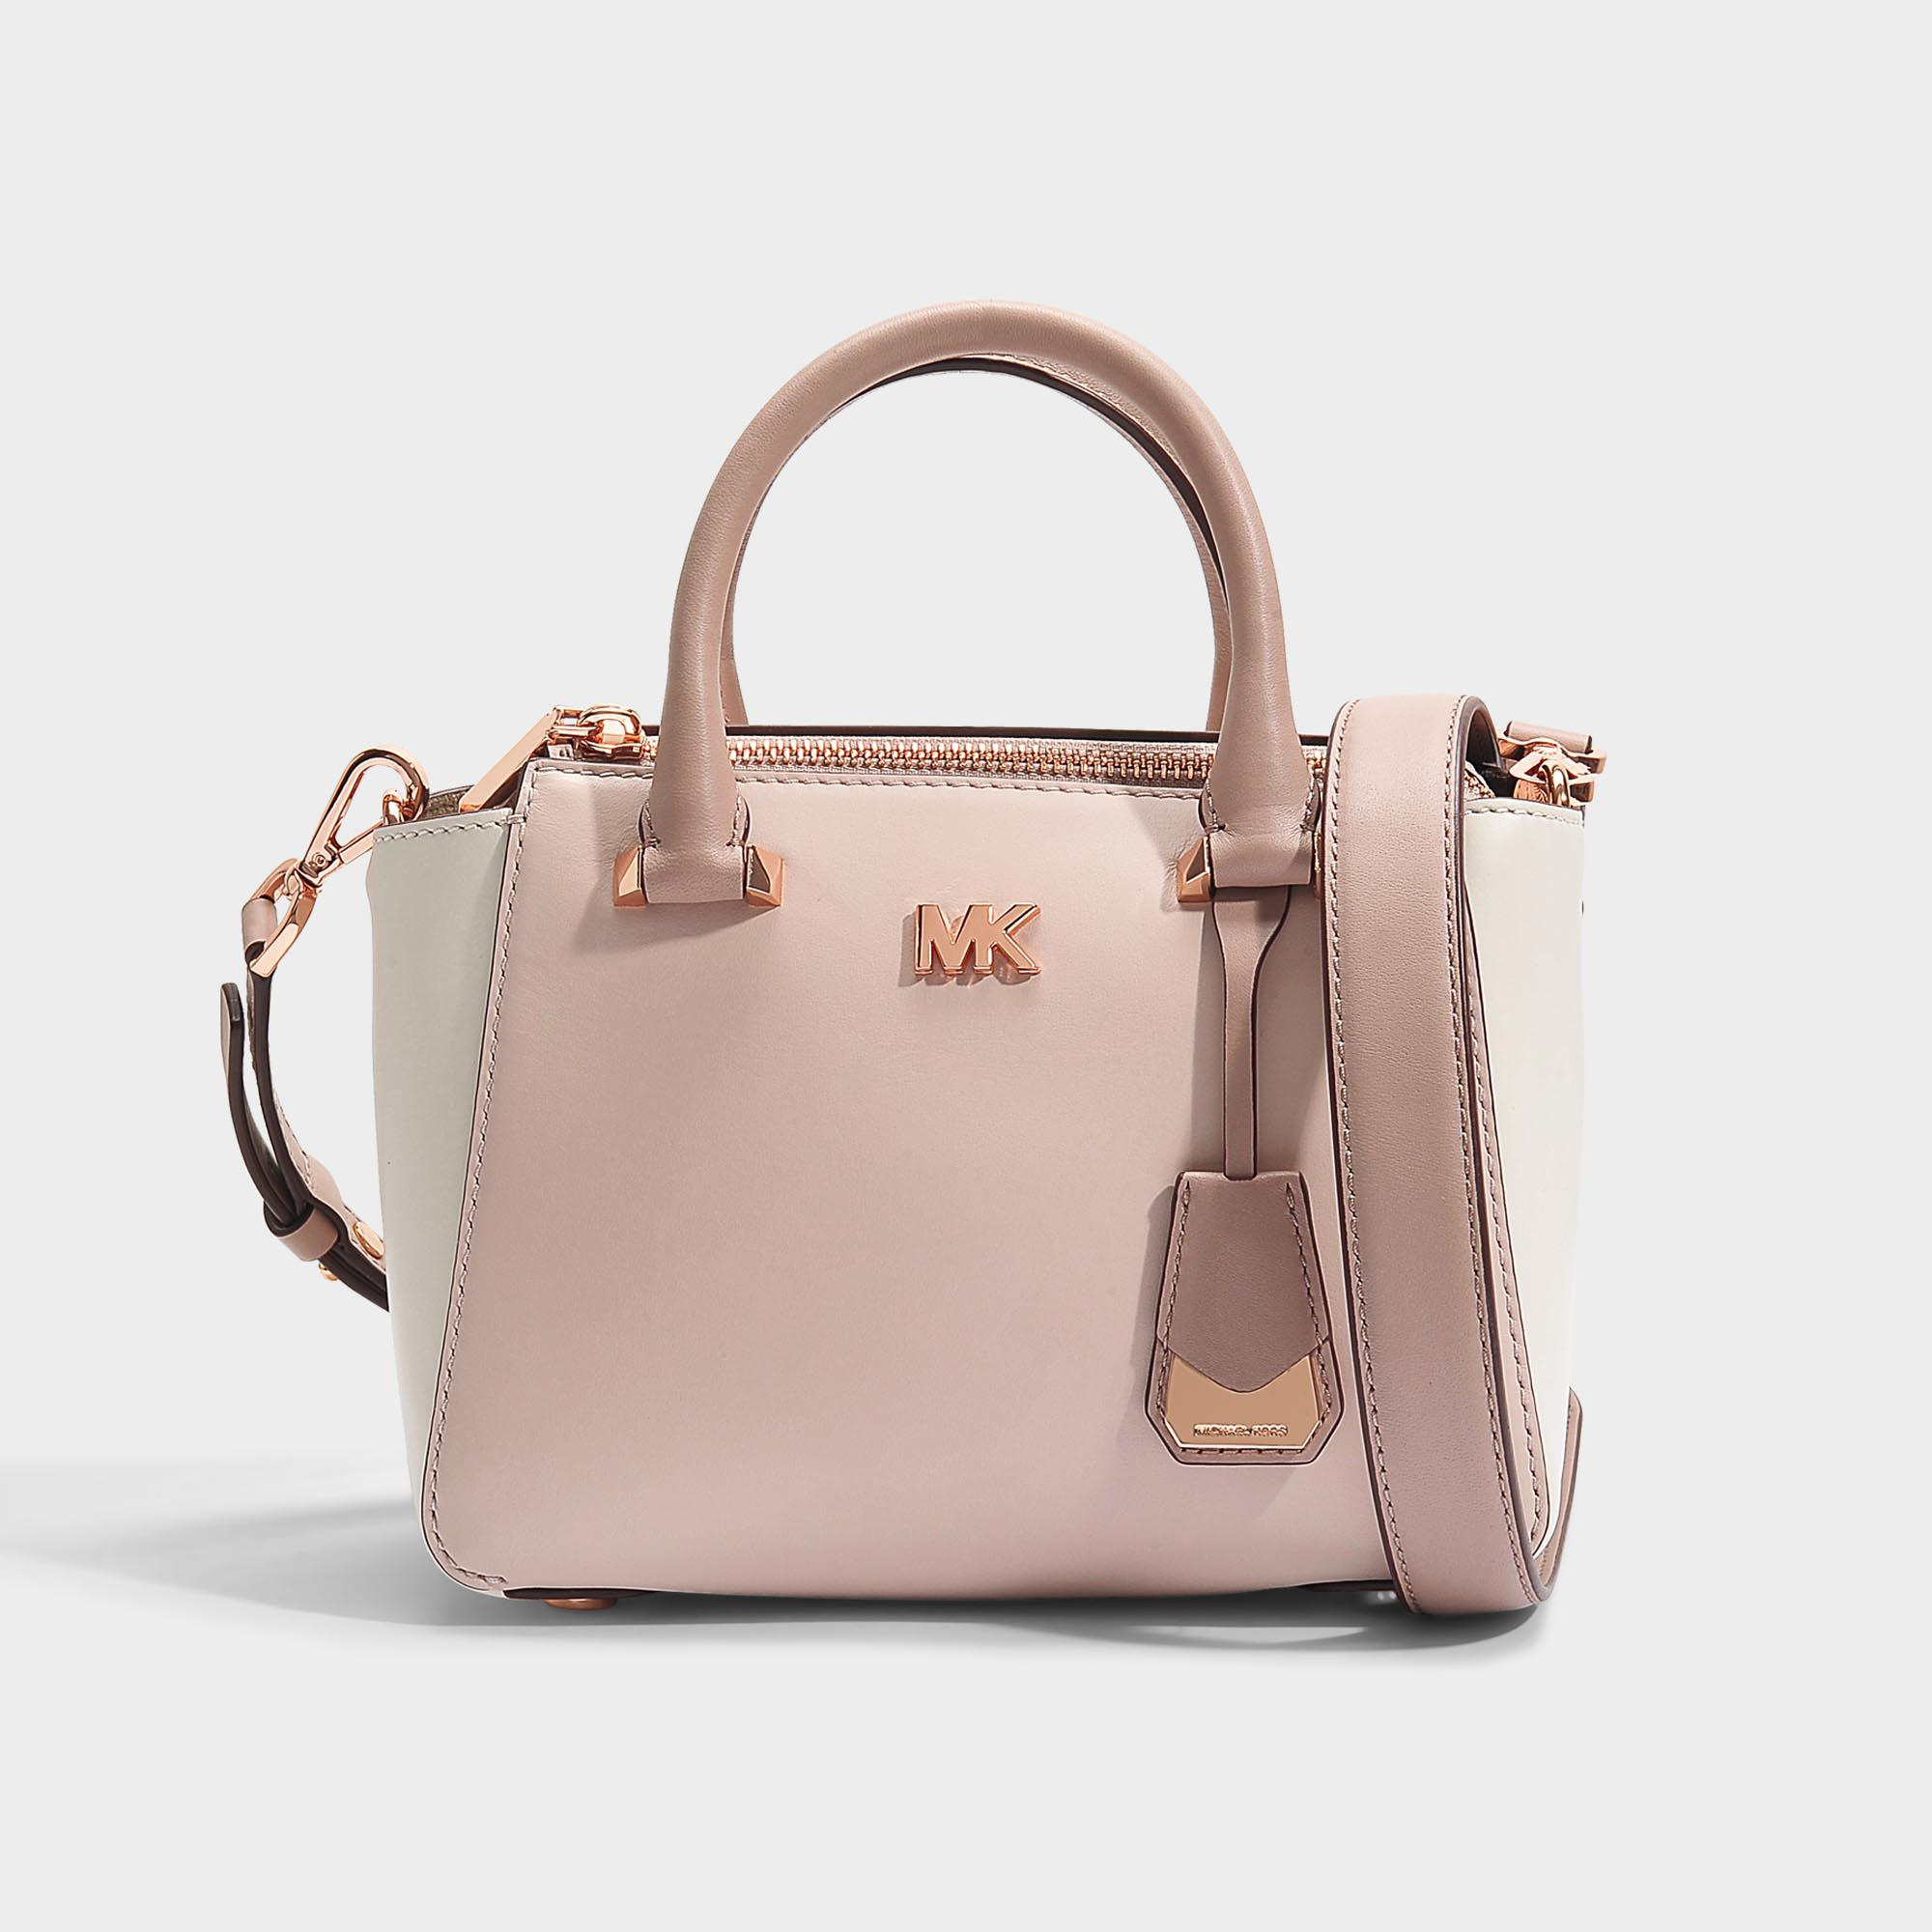 2ad9a75a3208f ... best price lyst michael michael kors nolita mini messenger bag in pink  and dac1e 7a6e9